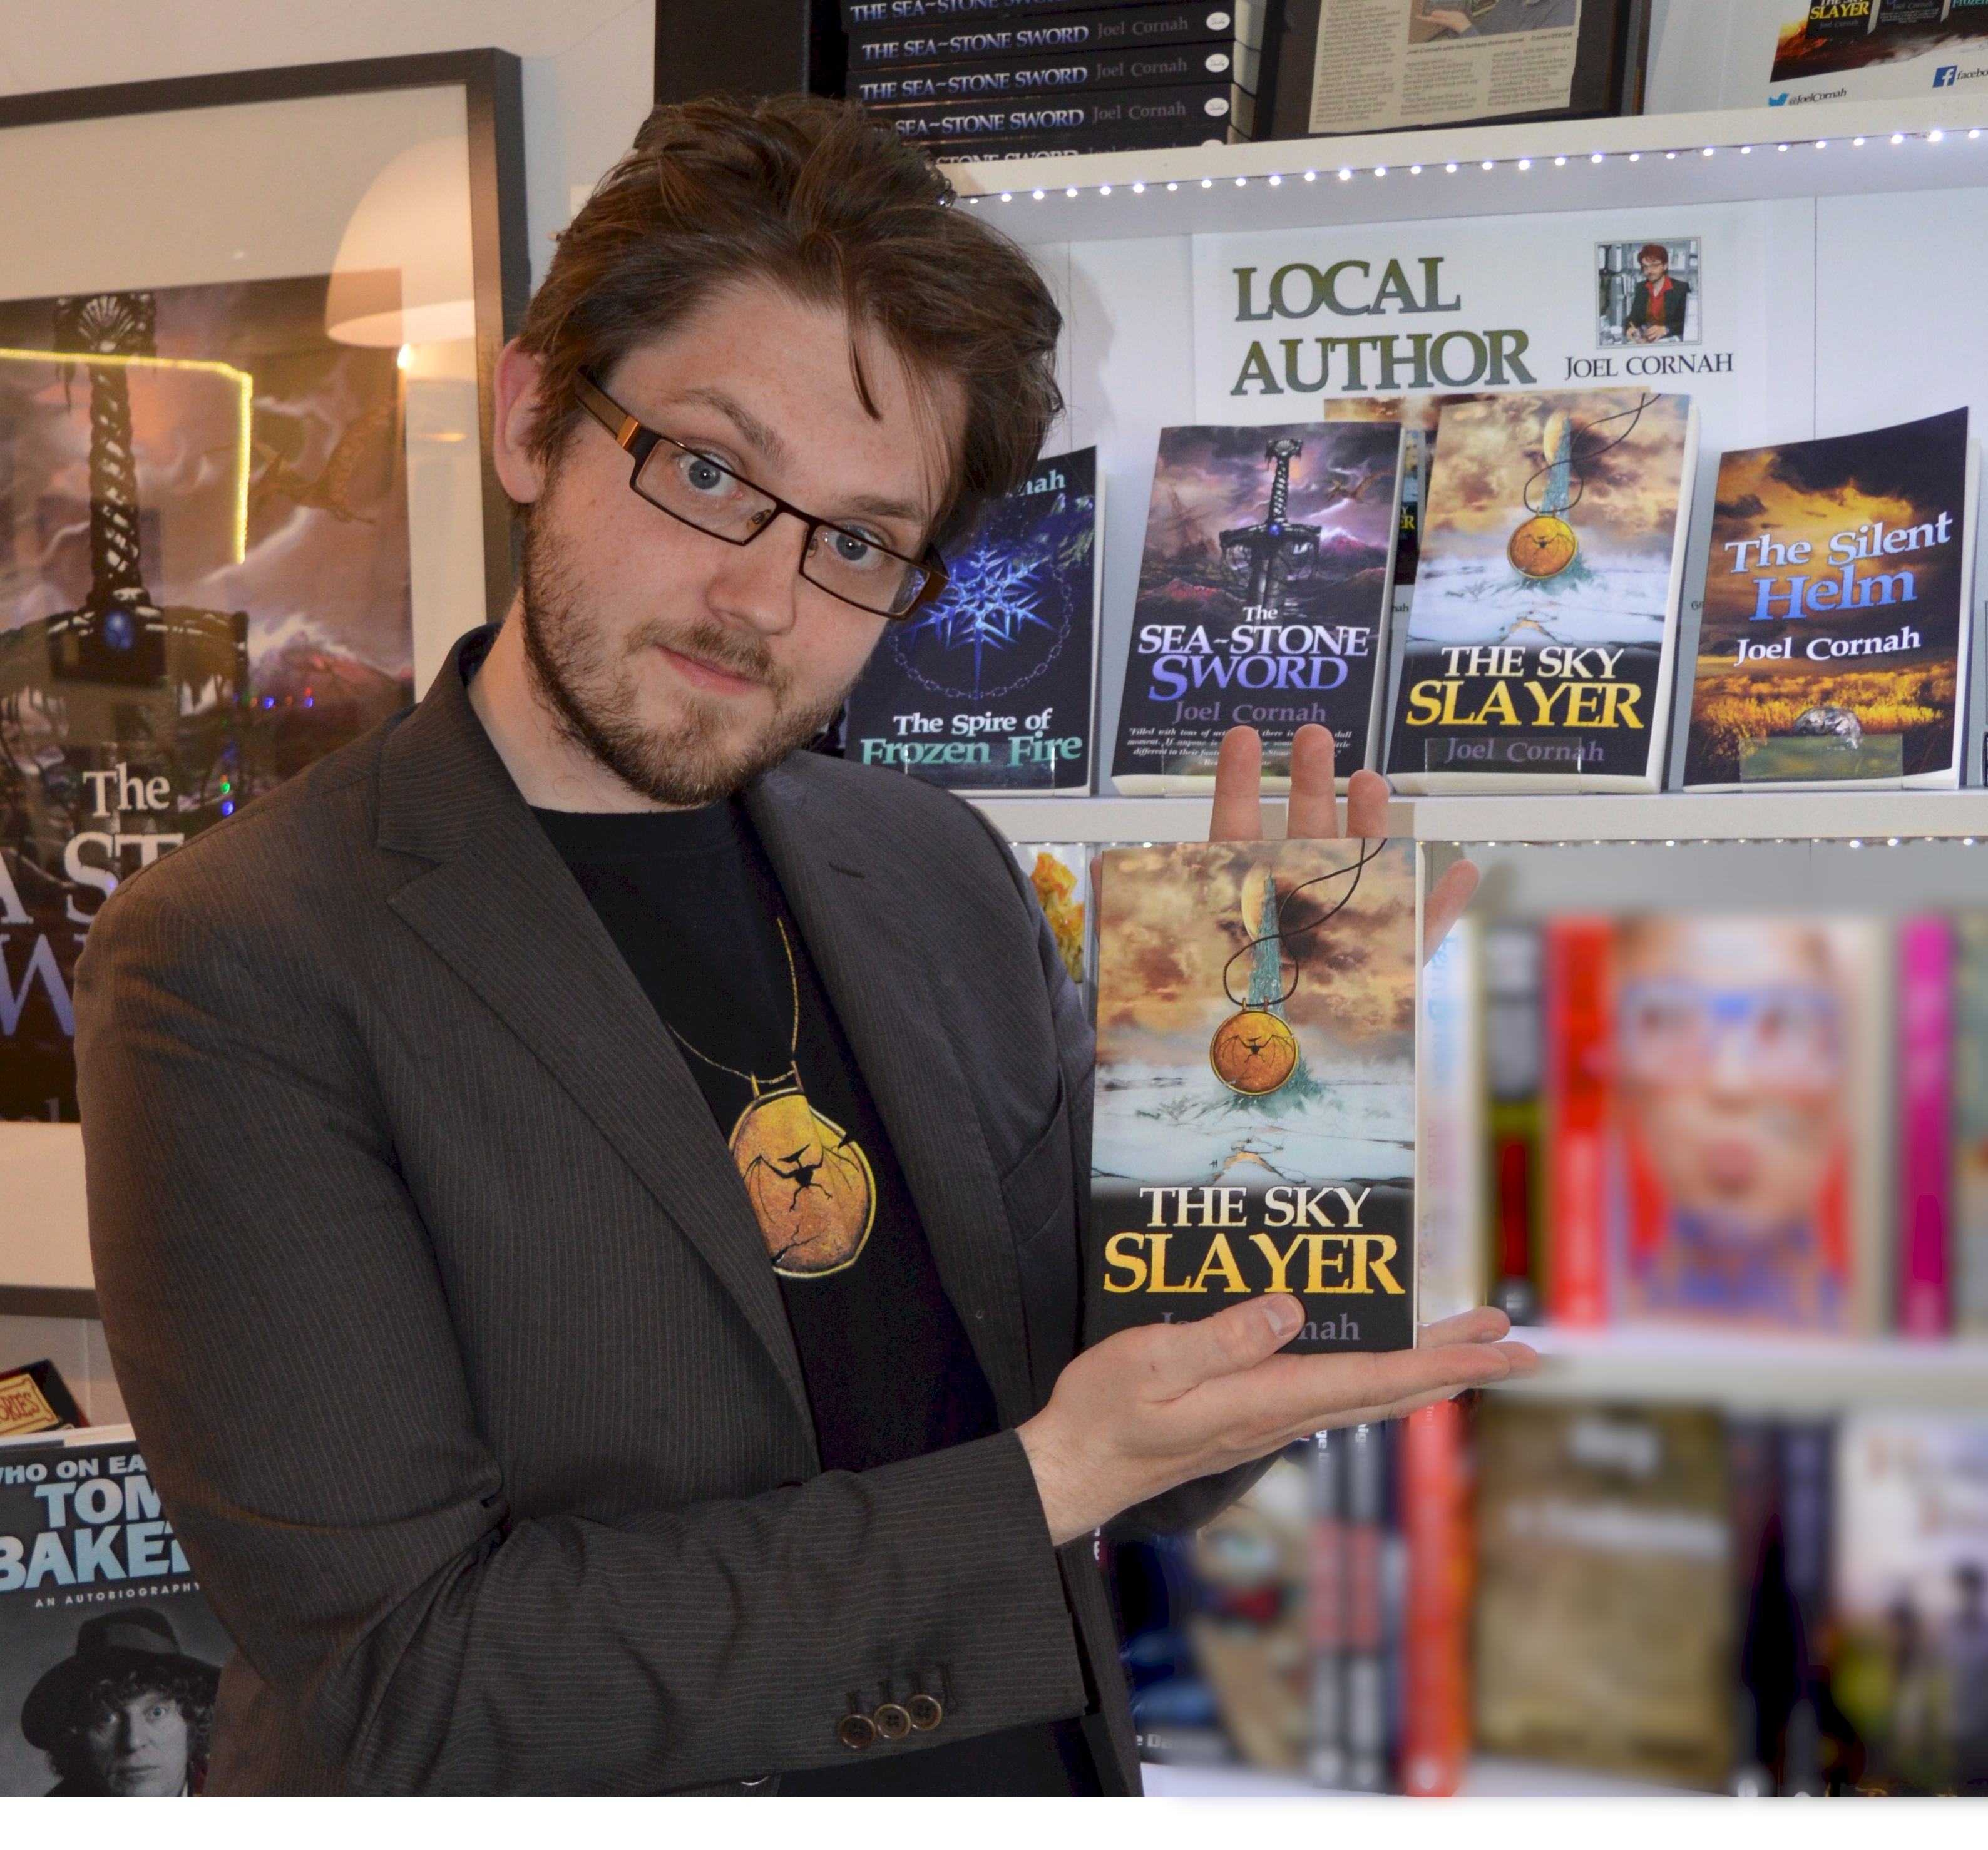 Cafe boss Joel serves up second helping of sci-fi fantasy fiction